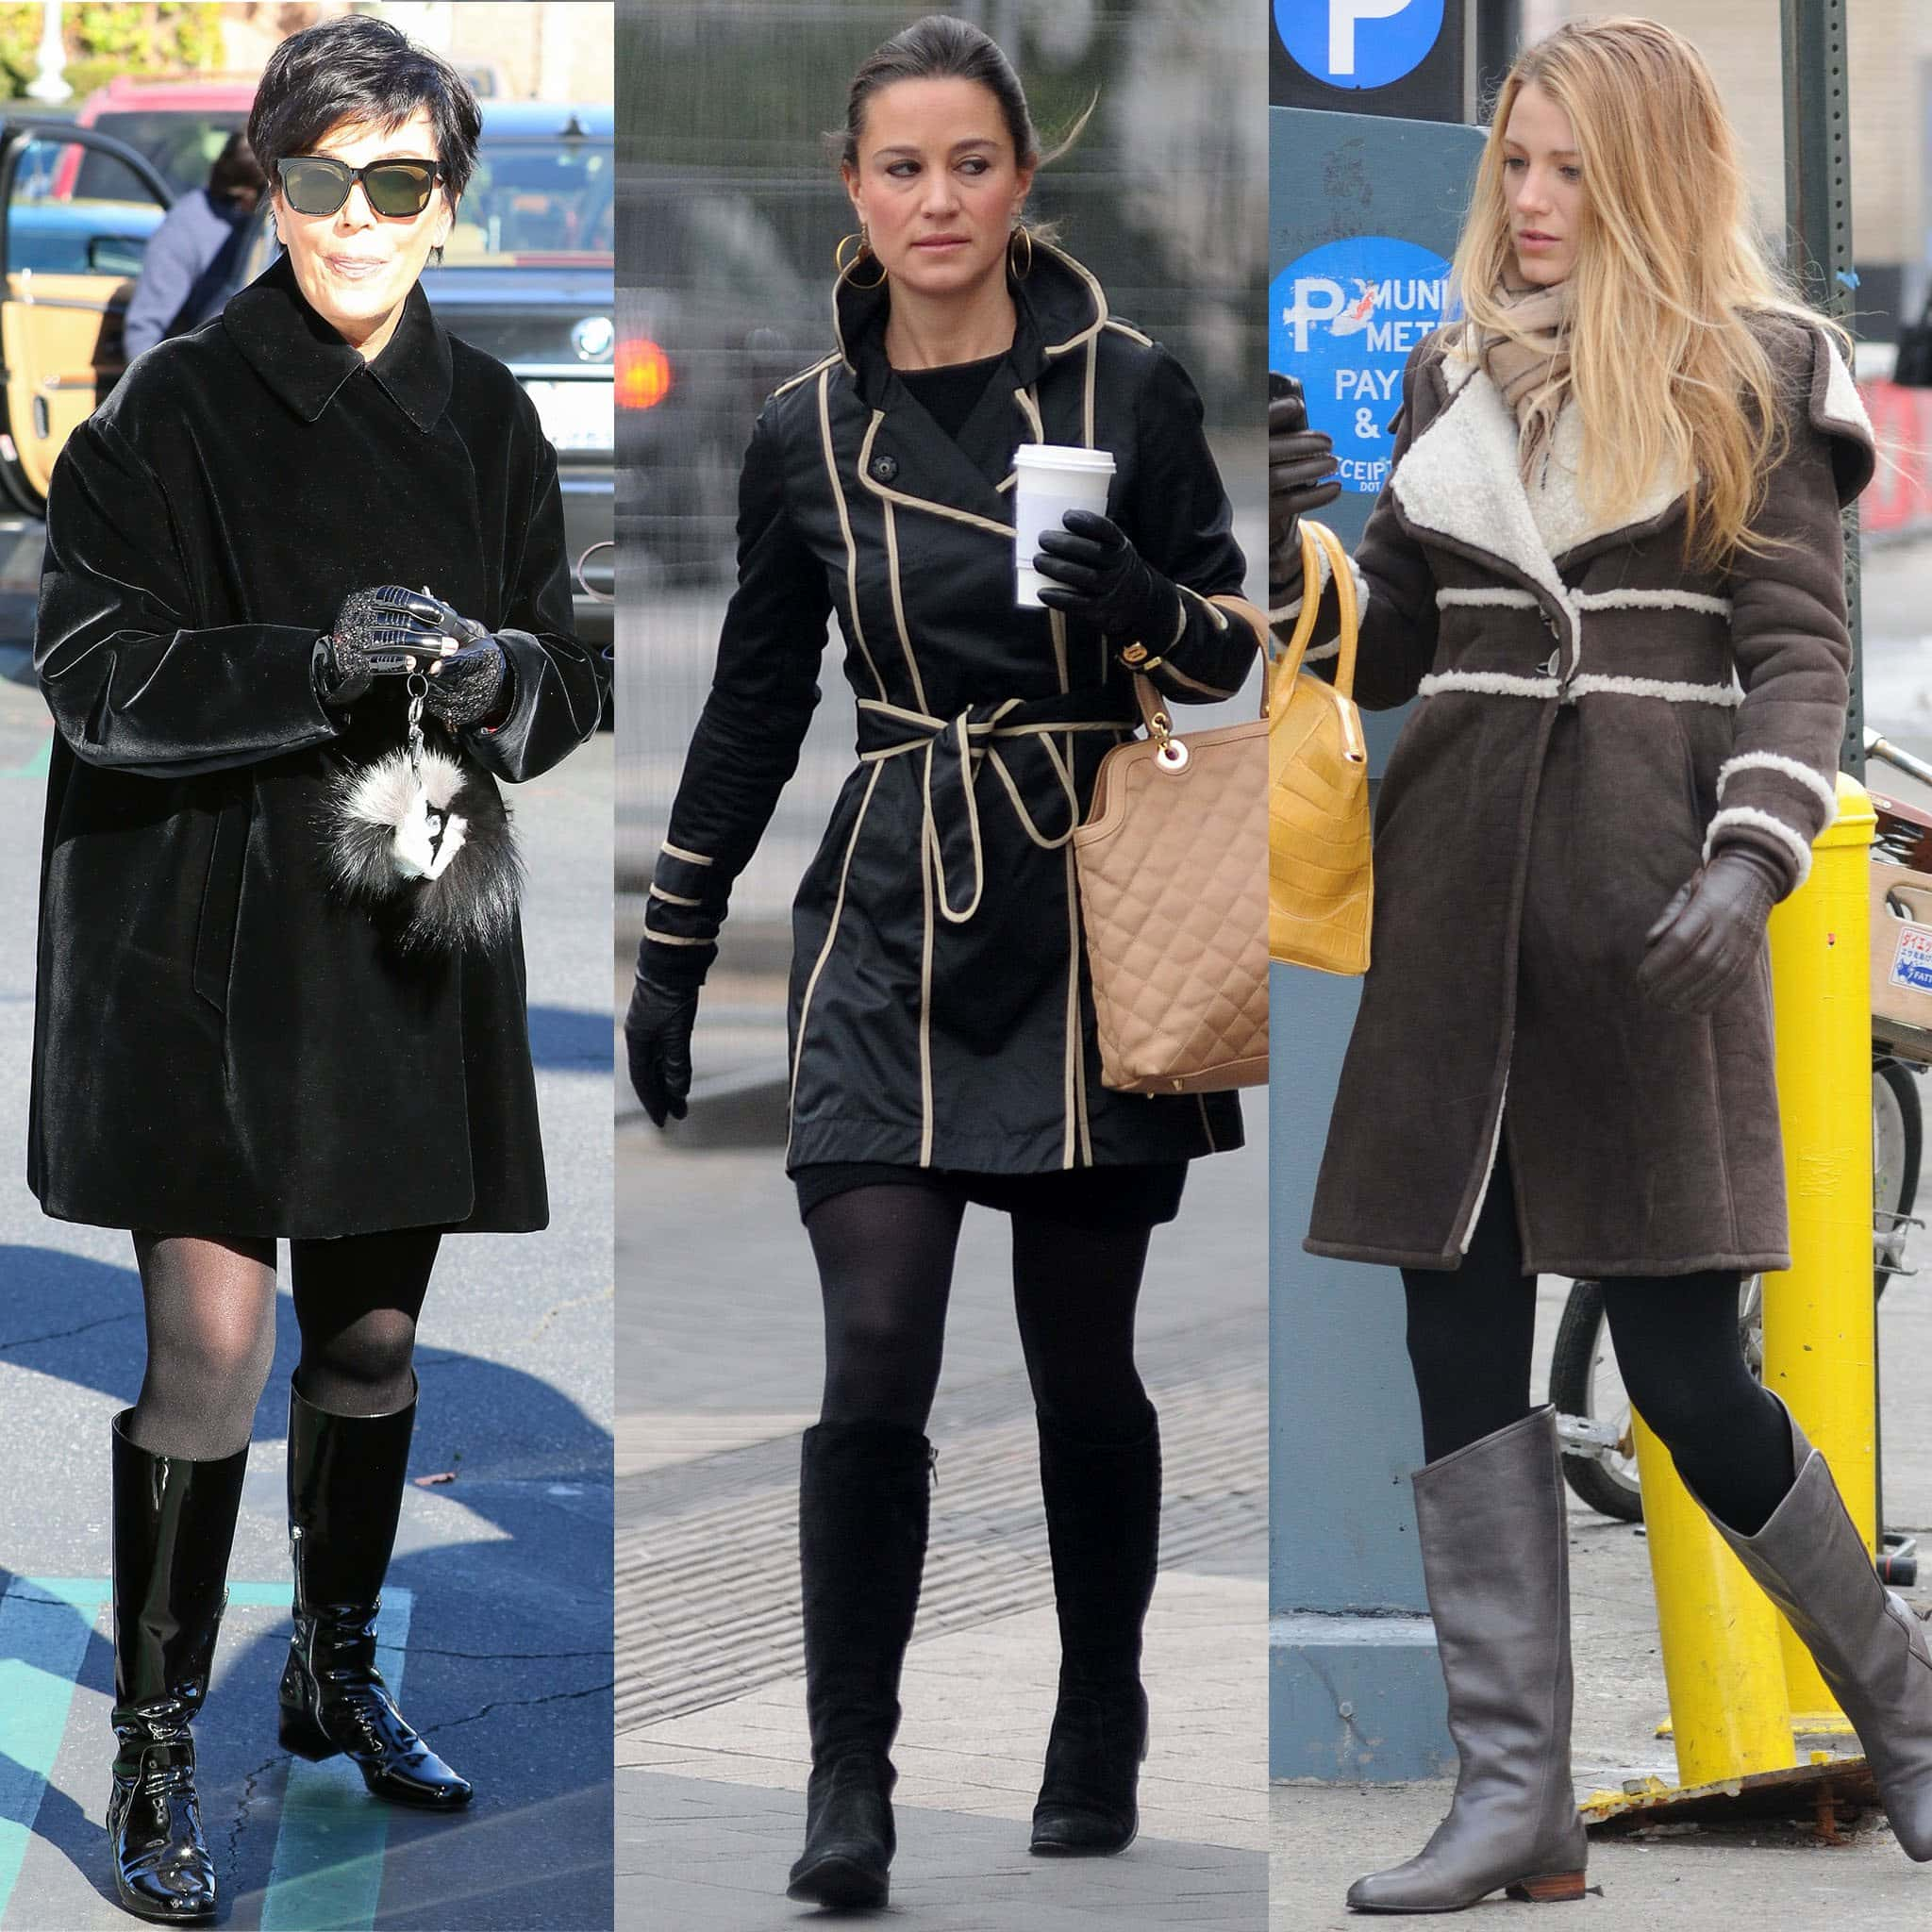 For the colder months, take it from Kris Jenner, Pippa Middleton, and Blake Lively and wear your riding boots with tights and winter coats